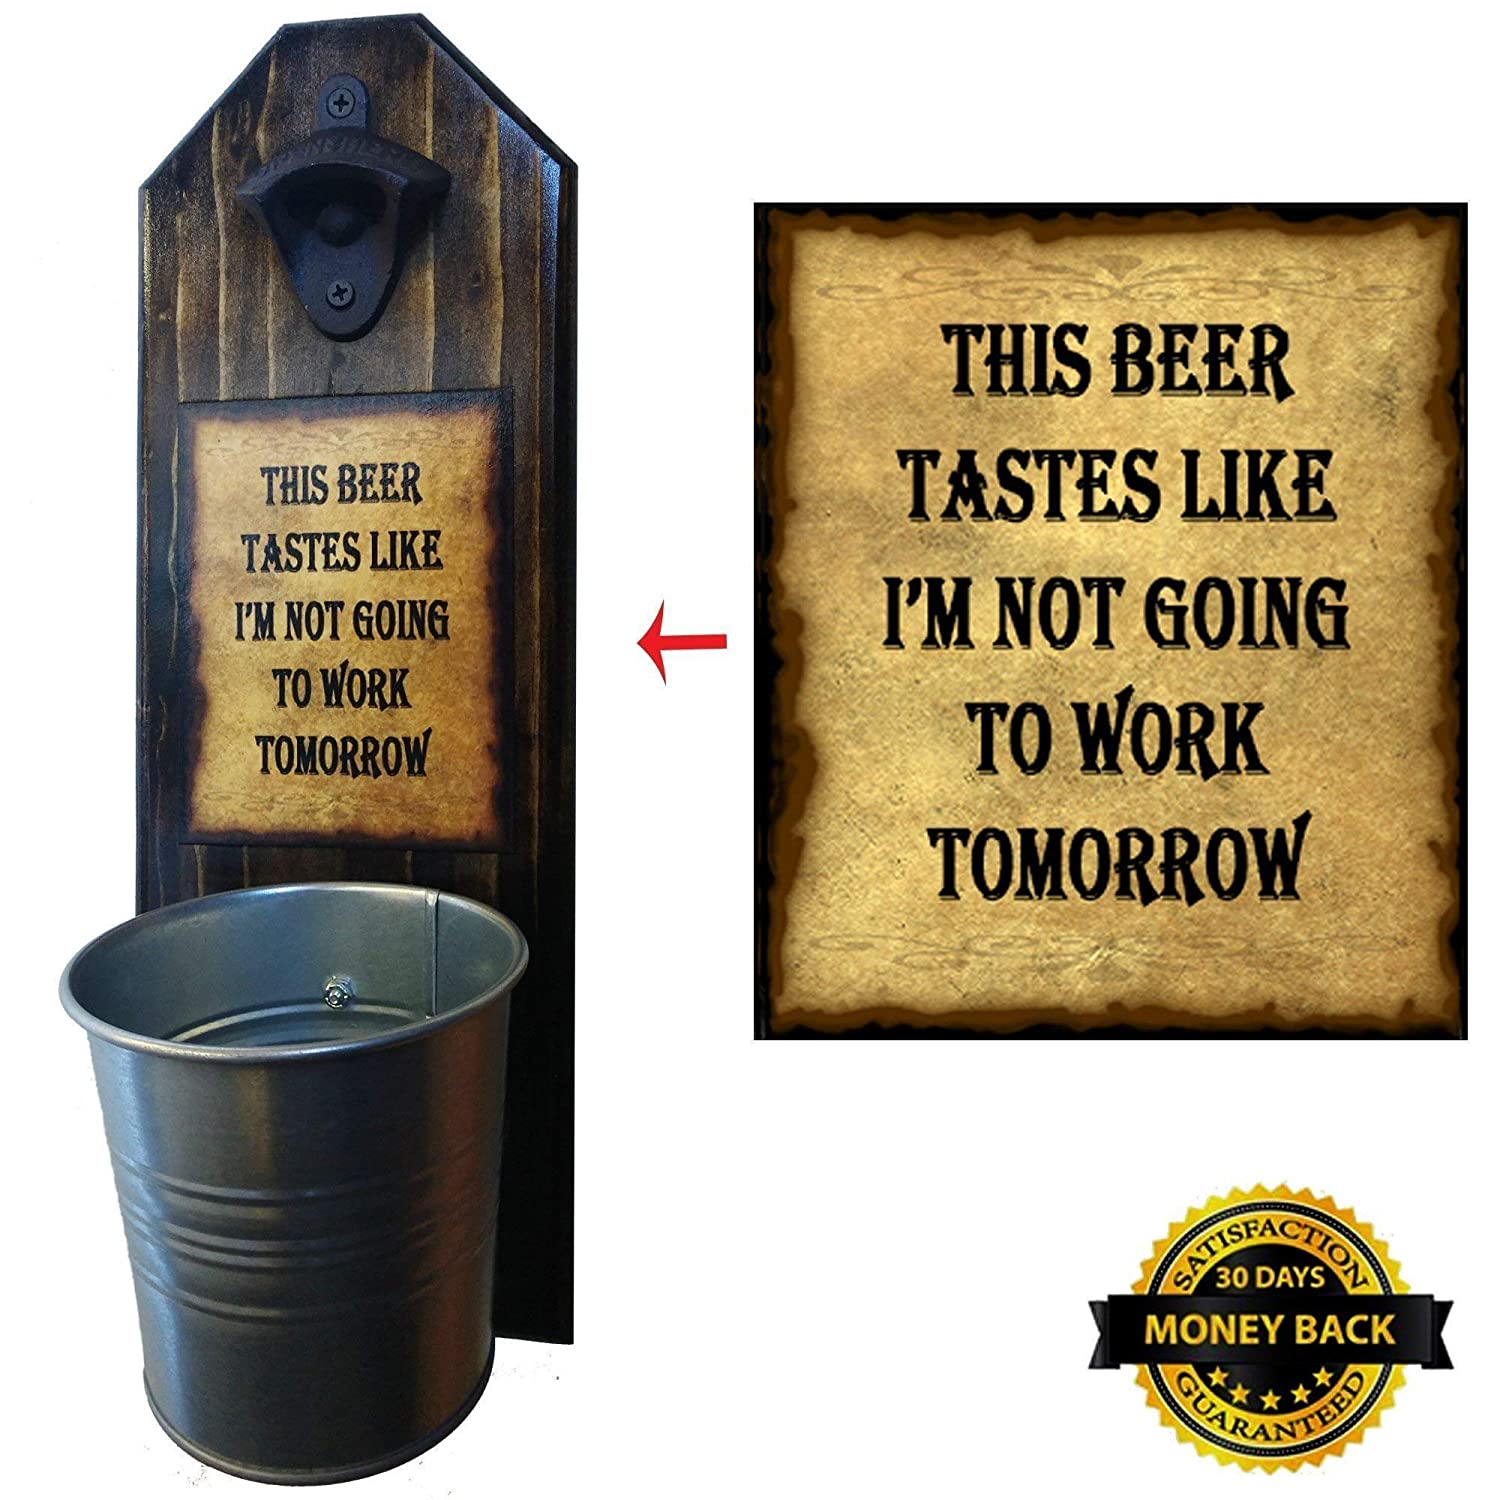 'This Beer Tastes Like I'm Not Going to Work Tomorrow' Bottle Opener n' Cap Catcher - Rustic Cast Iron Opener and Galvanized Bucket 100% Solid Pine 3/4' Thick - Mancave Necessity